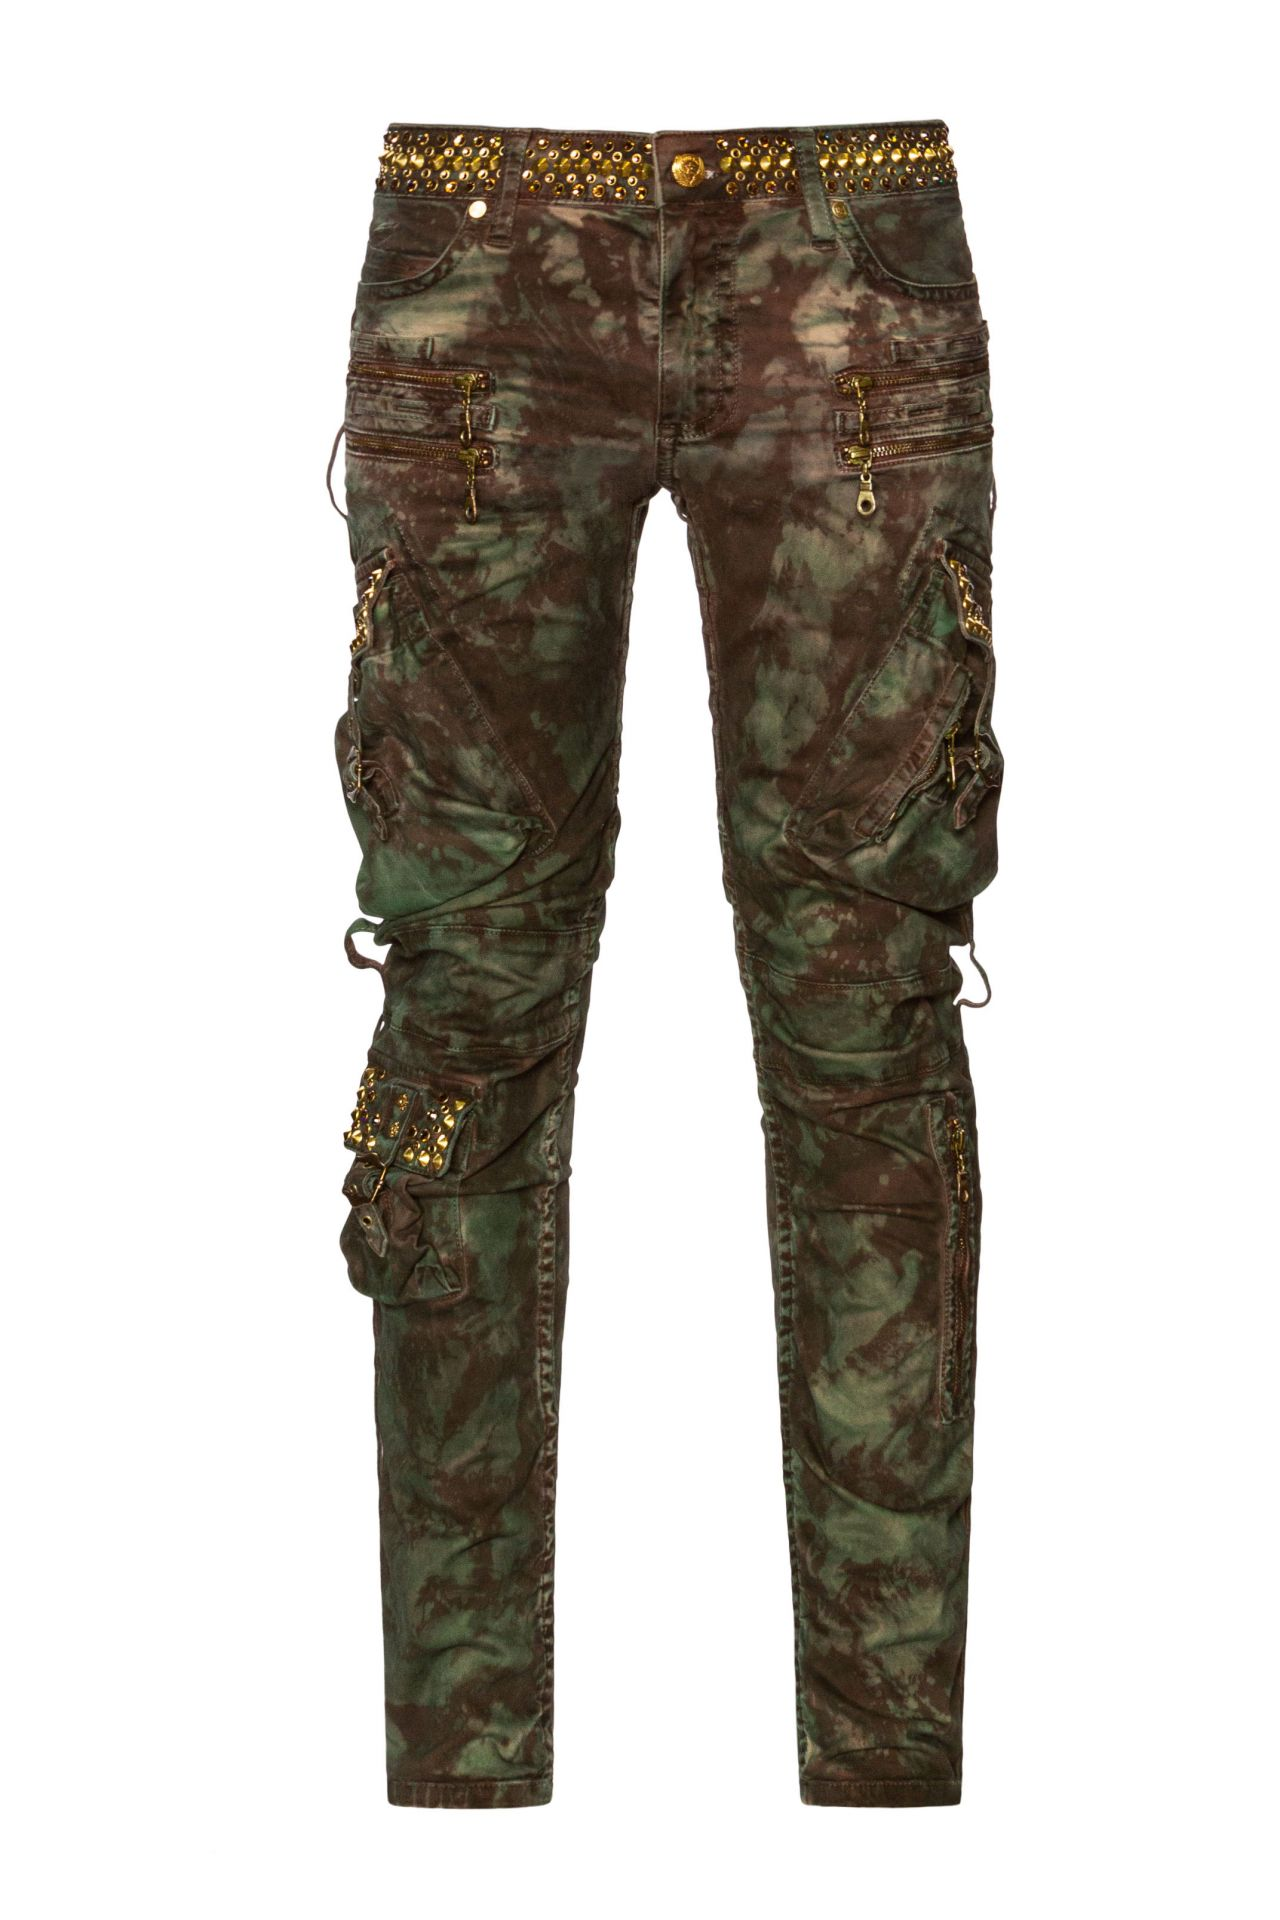 CRYSTAL LOADED MILITARY STYLE CARGO IN TIE DYE CAMO